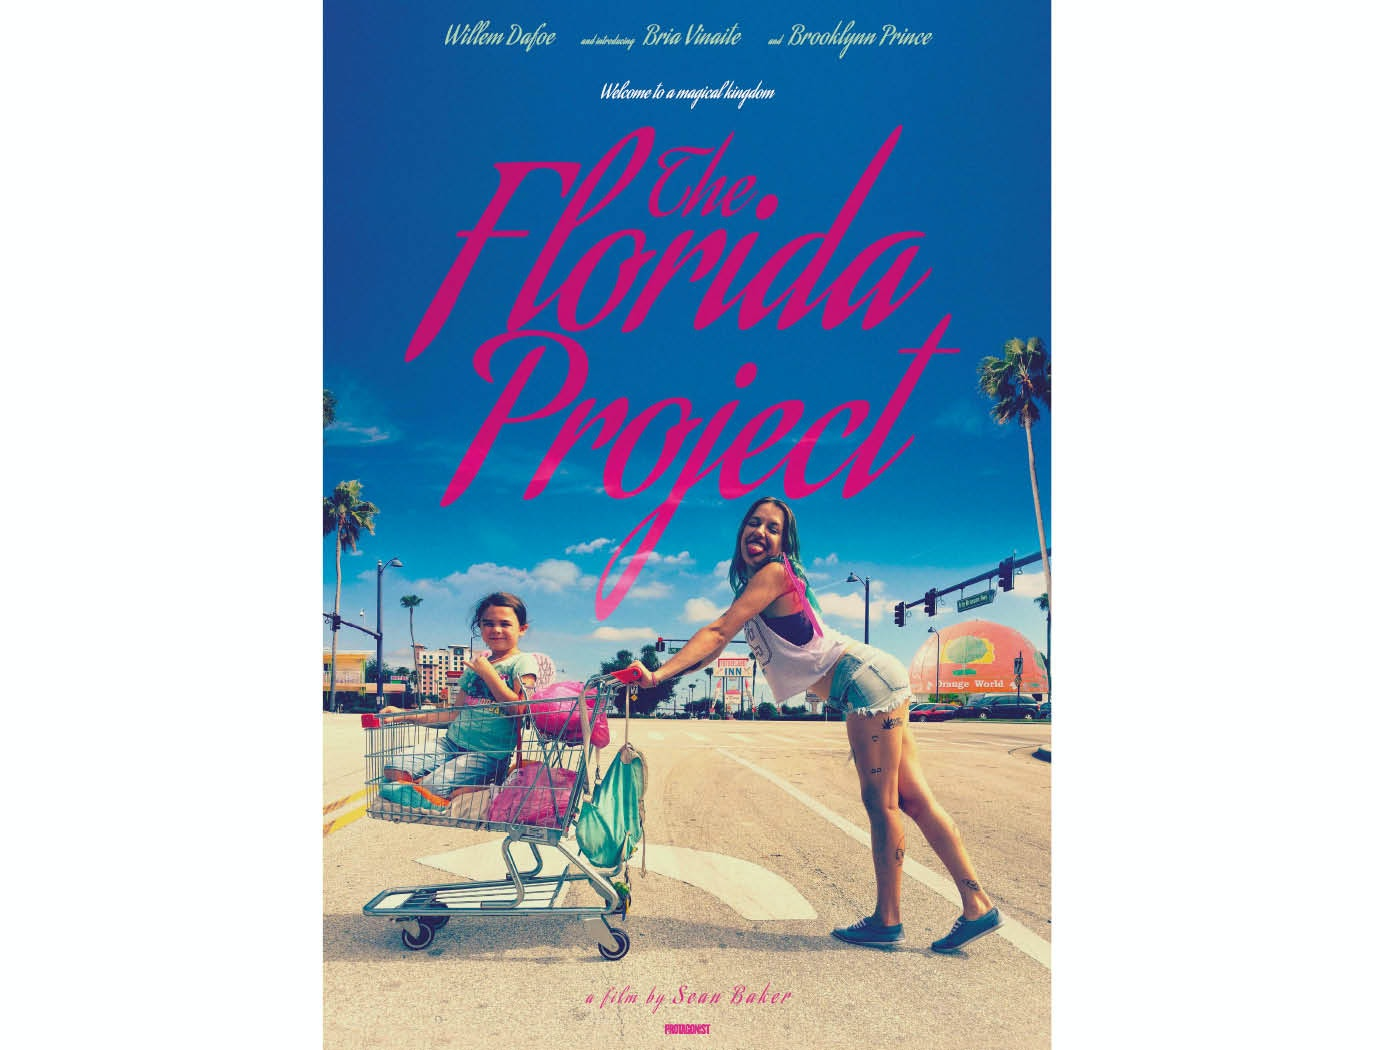 10 double passes to The Florida Project sweepstakes